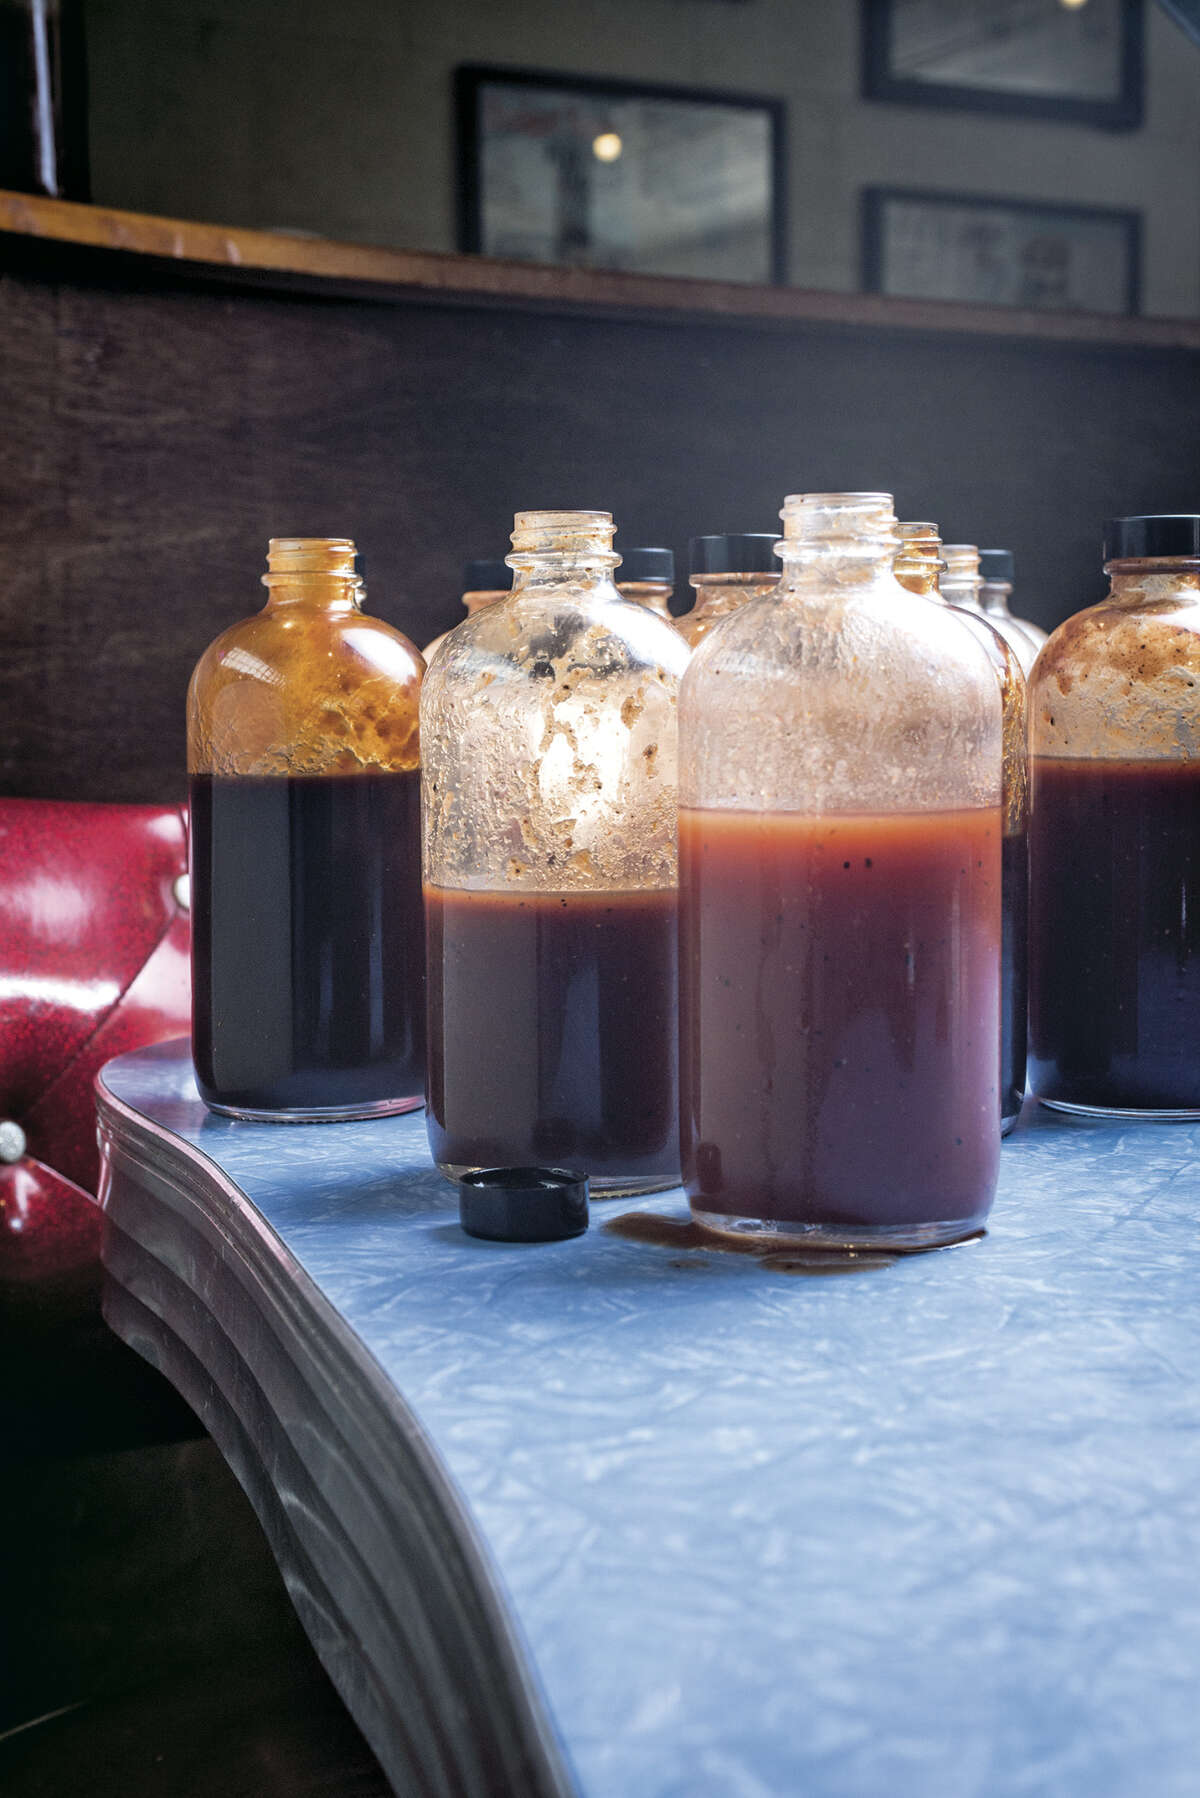 Franklin Barbecue prepares and serves a number of barbecue sauces.